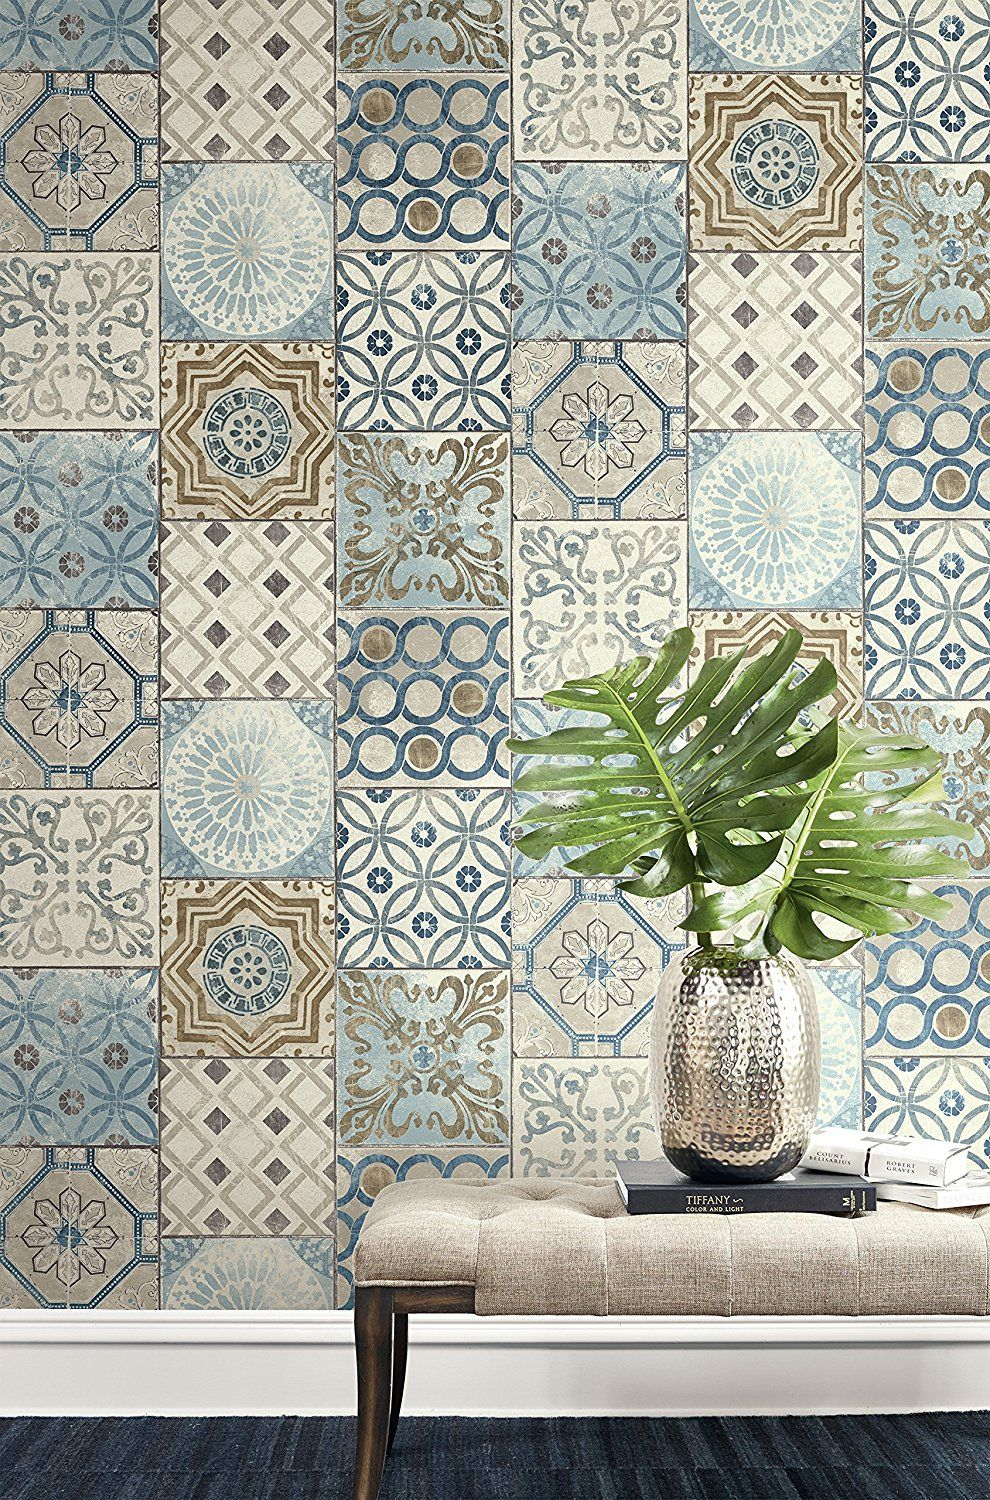 moroccan style mosaic wallpaper in blue